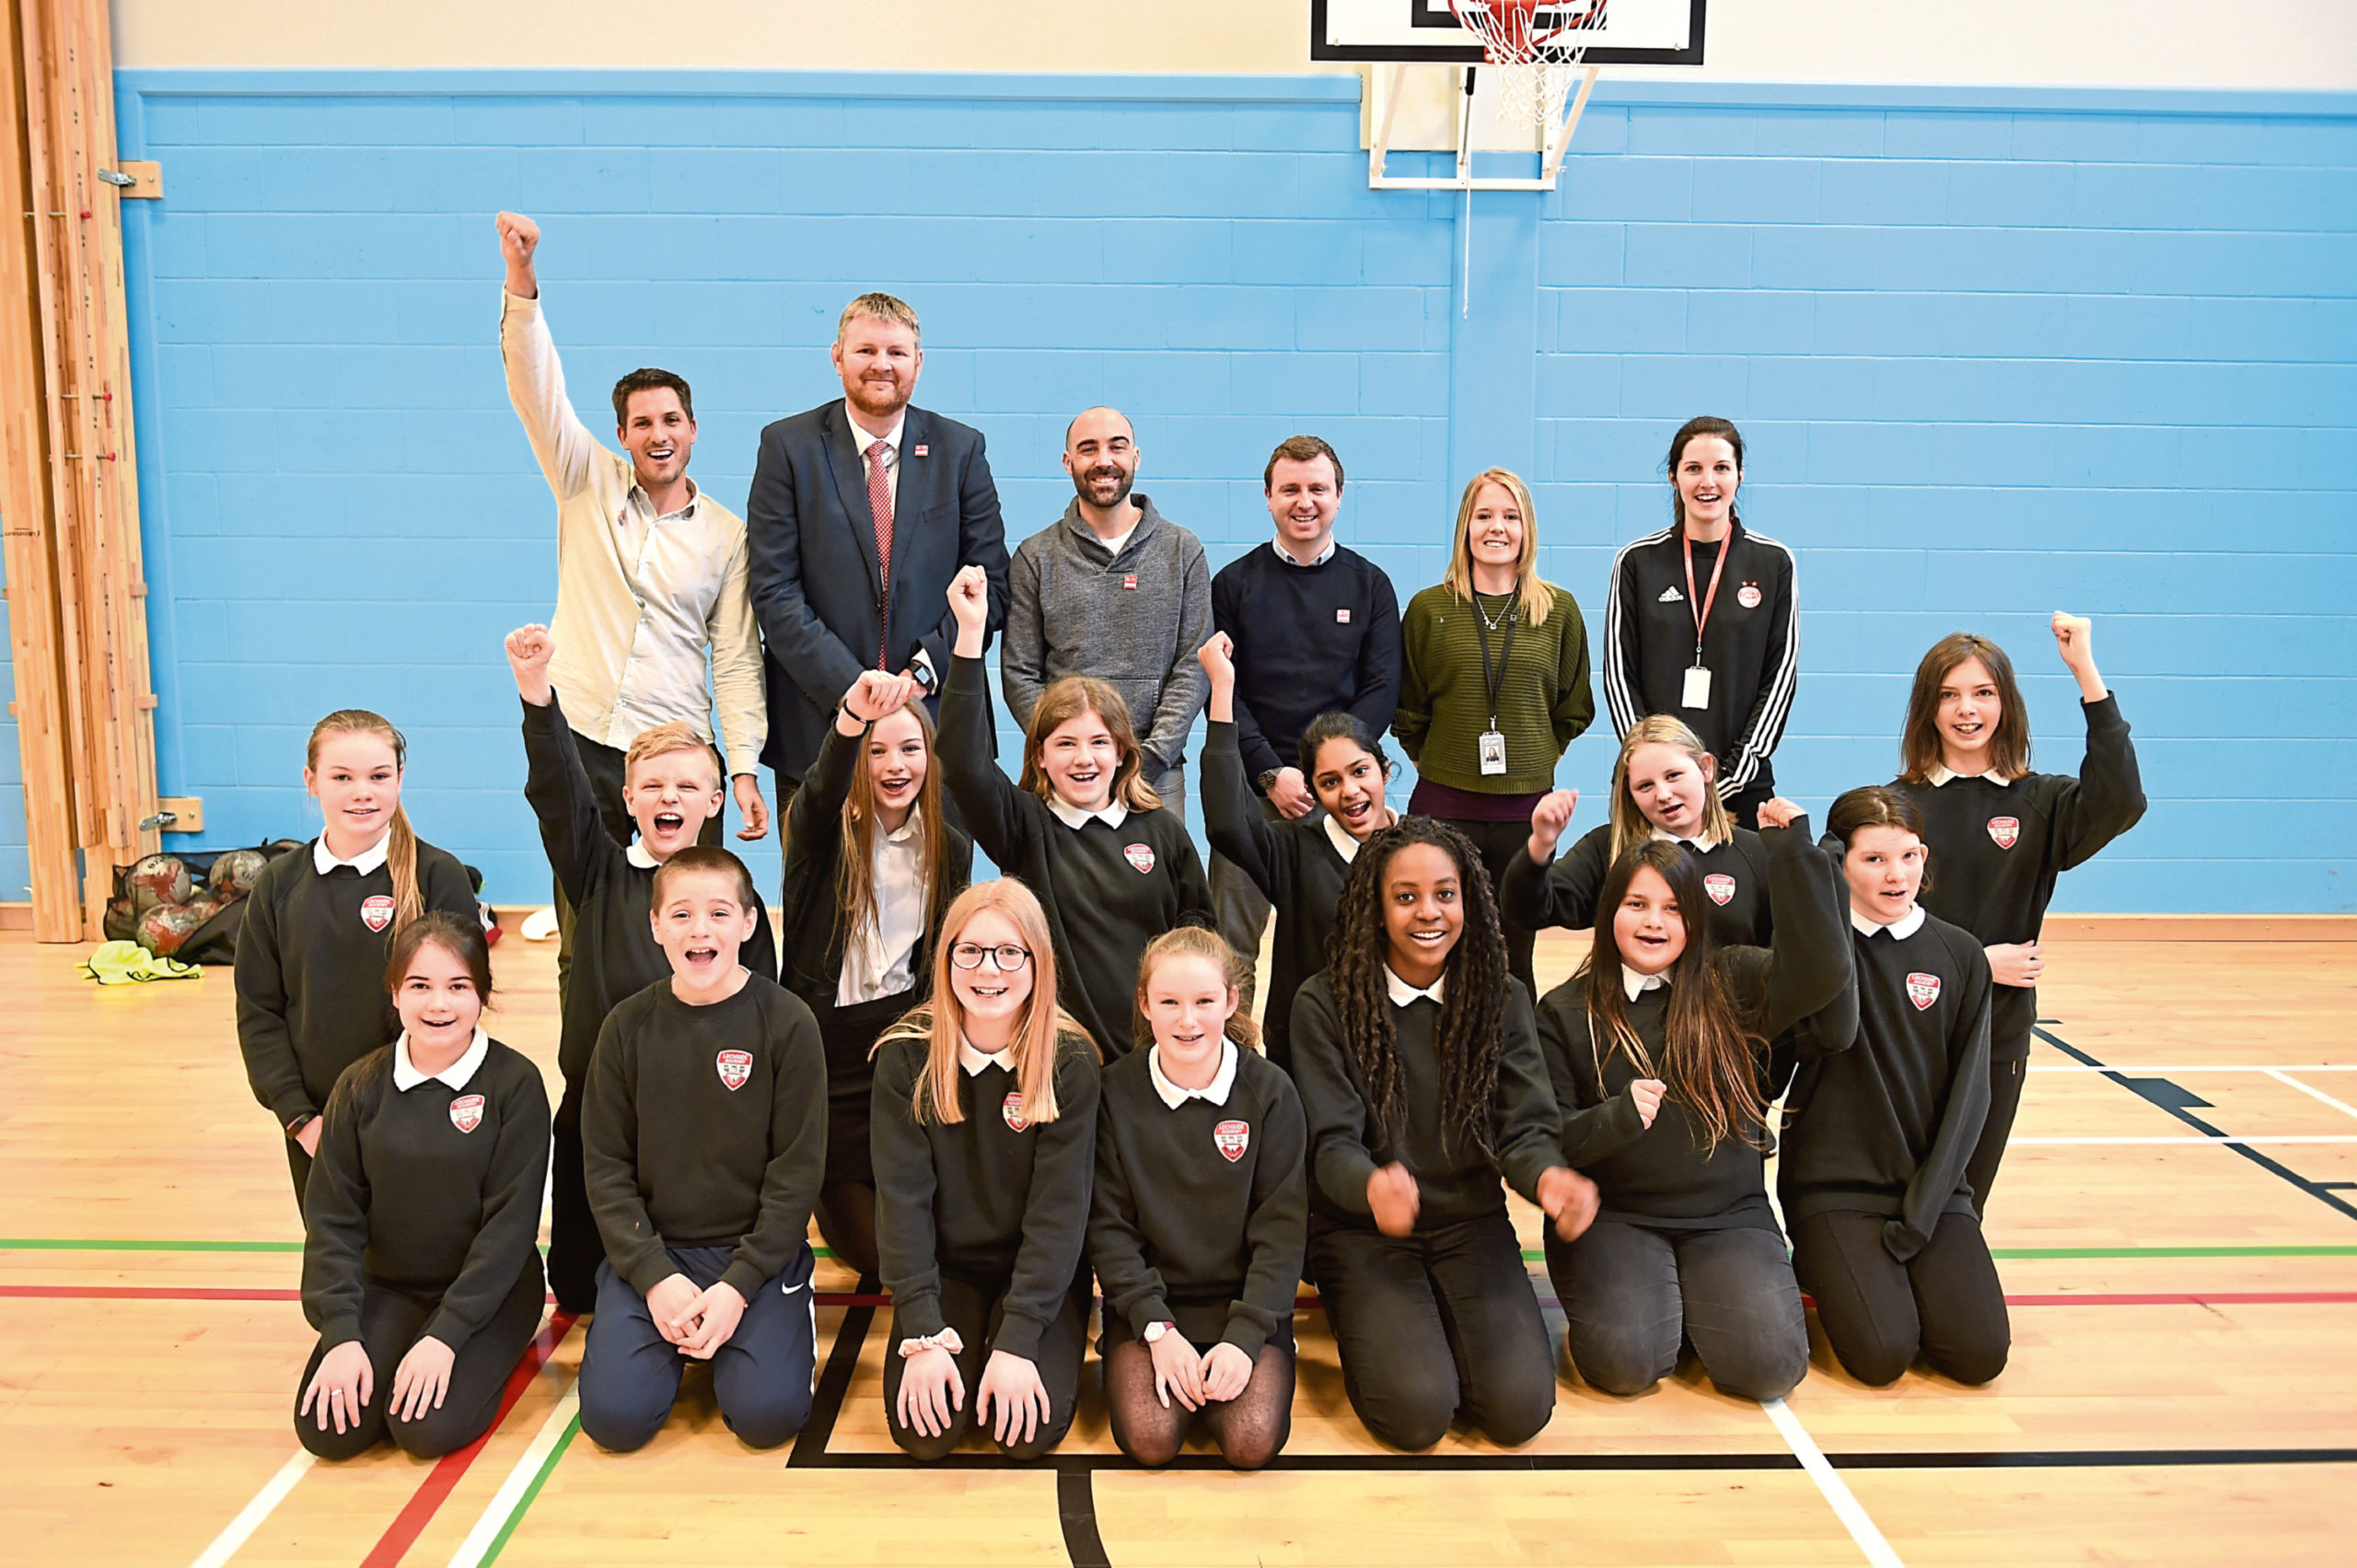 Lochside Academy pupils with Chris Barkley from Grassroot Soccer, head teacher Neil Hendry, Jeff DeCelles of Grassroot Soccer, Steven Sweeney of AFCCT, Holly Hillson-Dawson of Grassroot Soccer and instructor Laura Whitfield